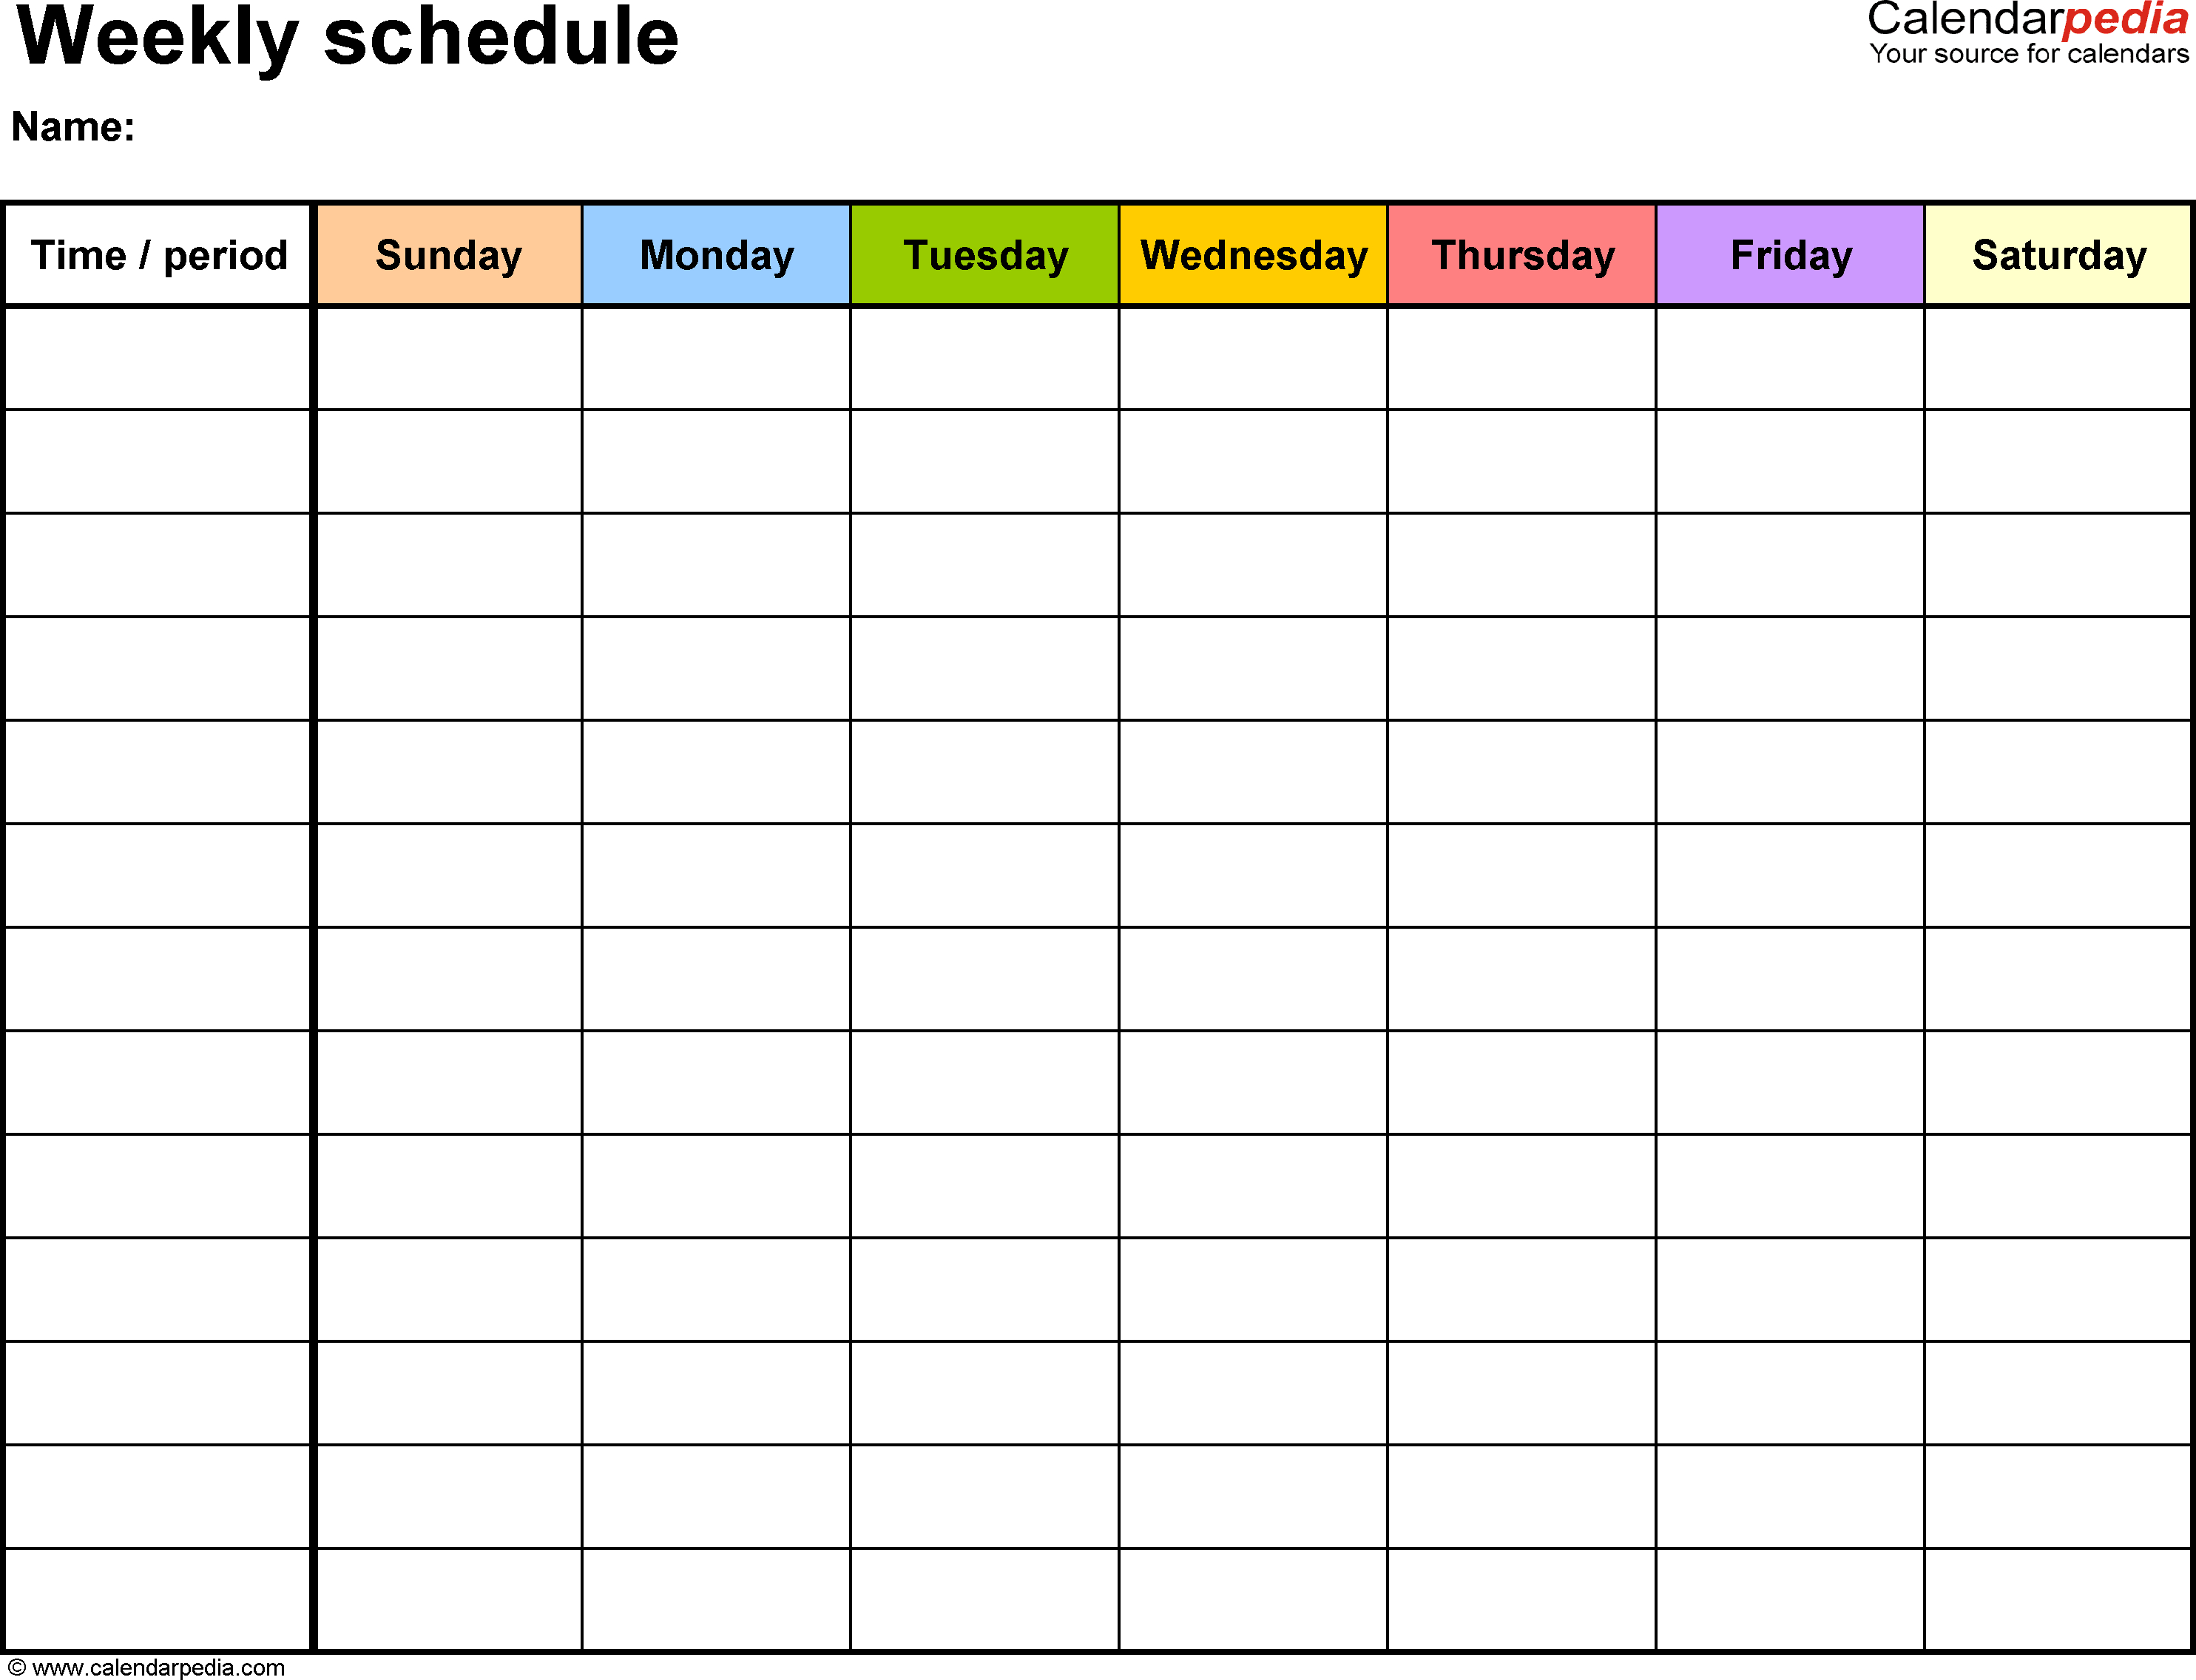 Free Weekly Schedule Templates For Word - 18 Templates intended for Calendar Template Monday To Sunday